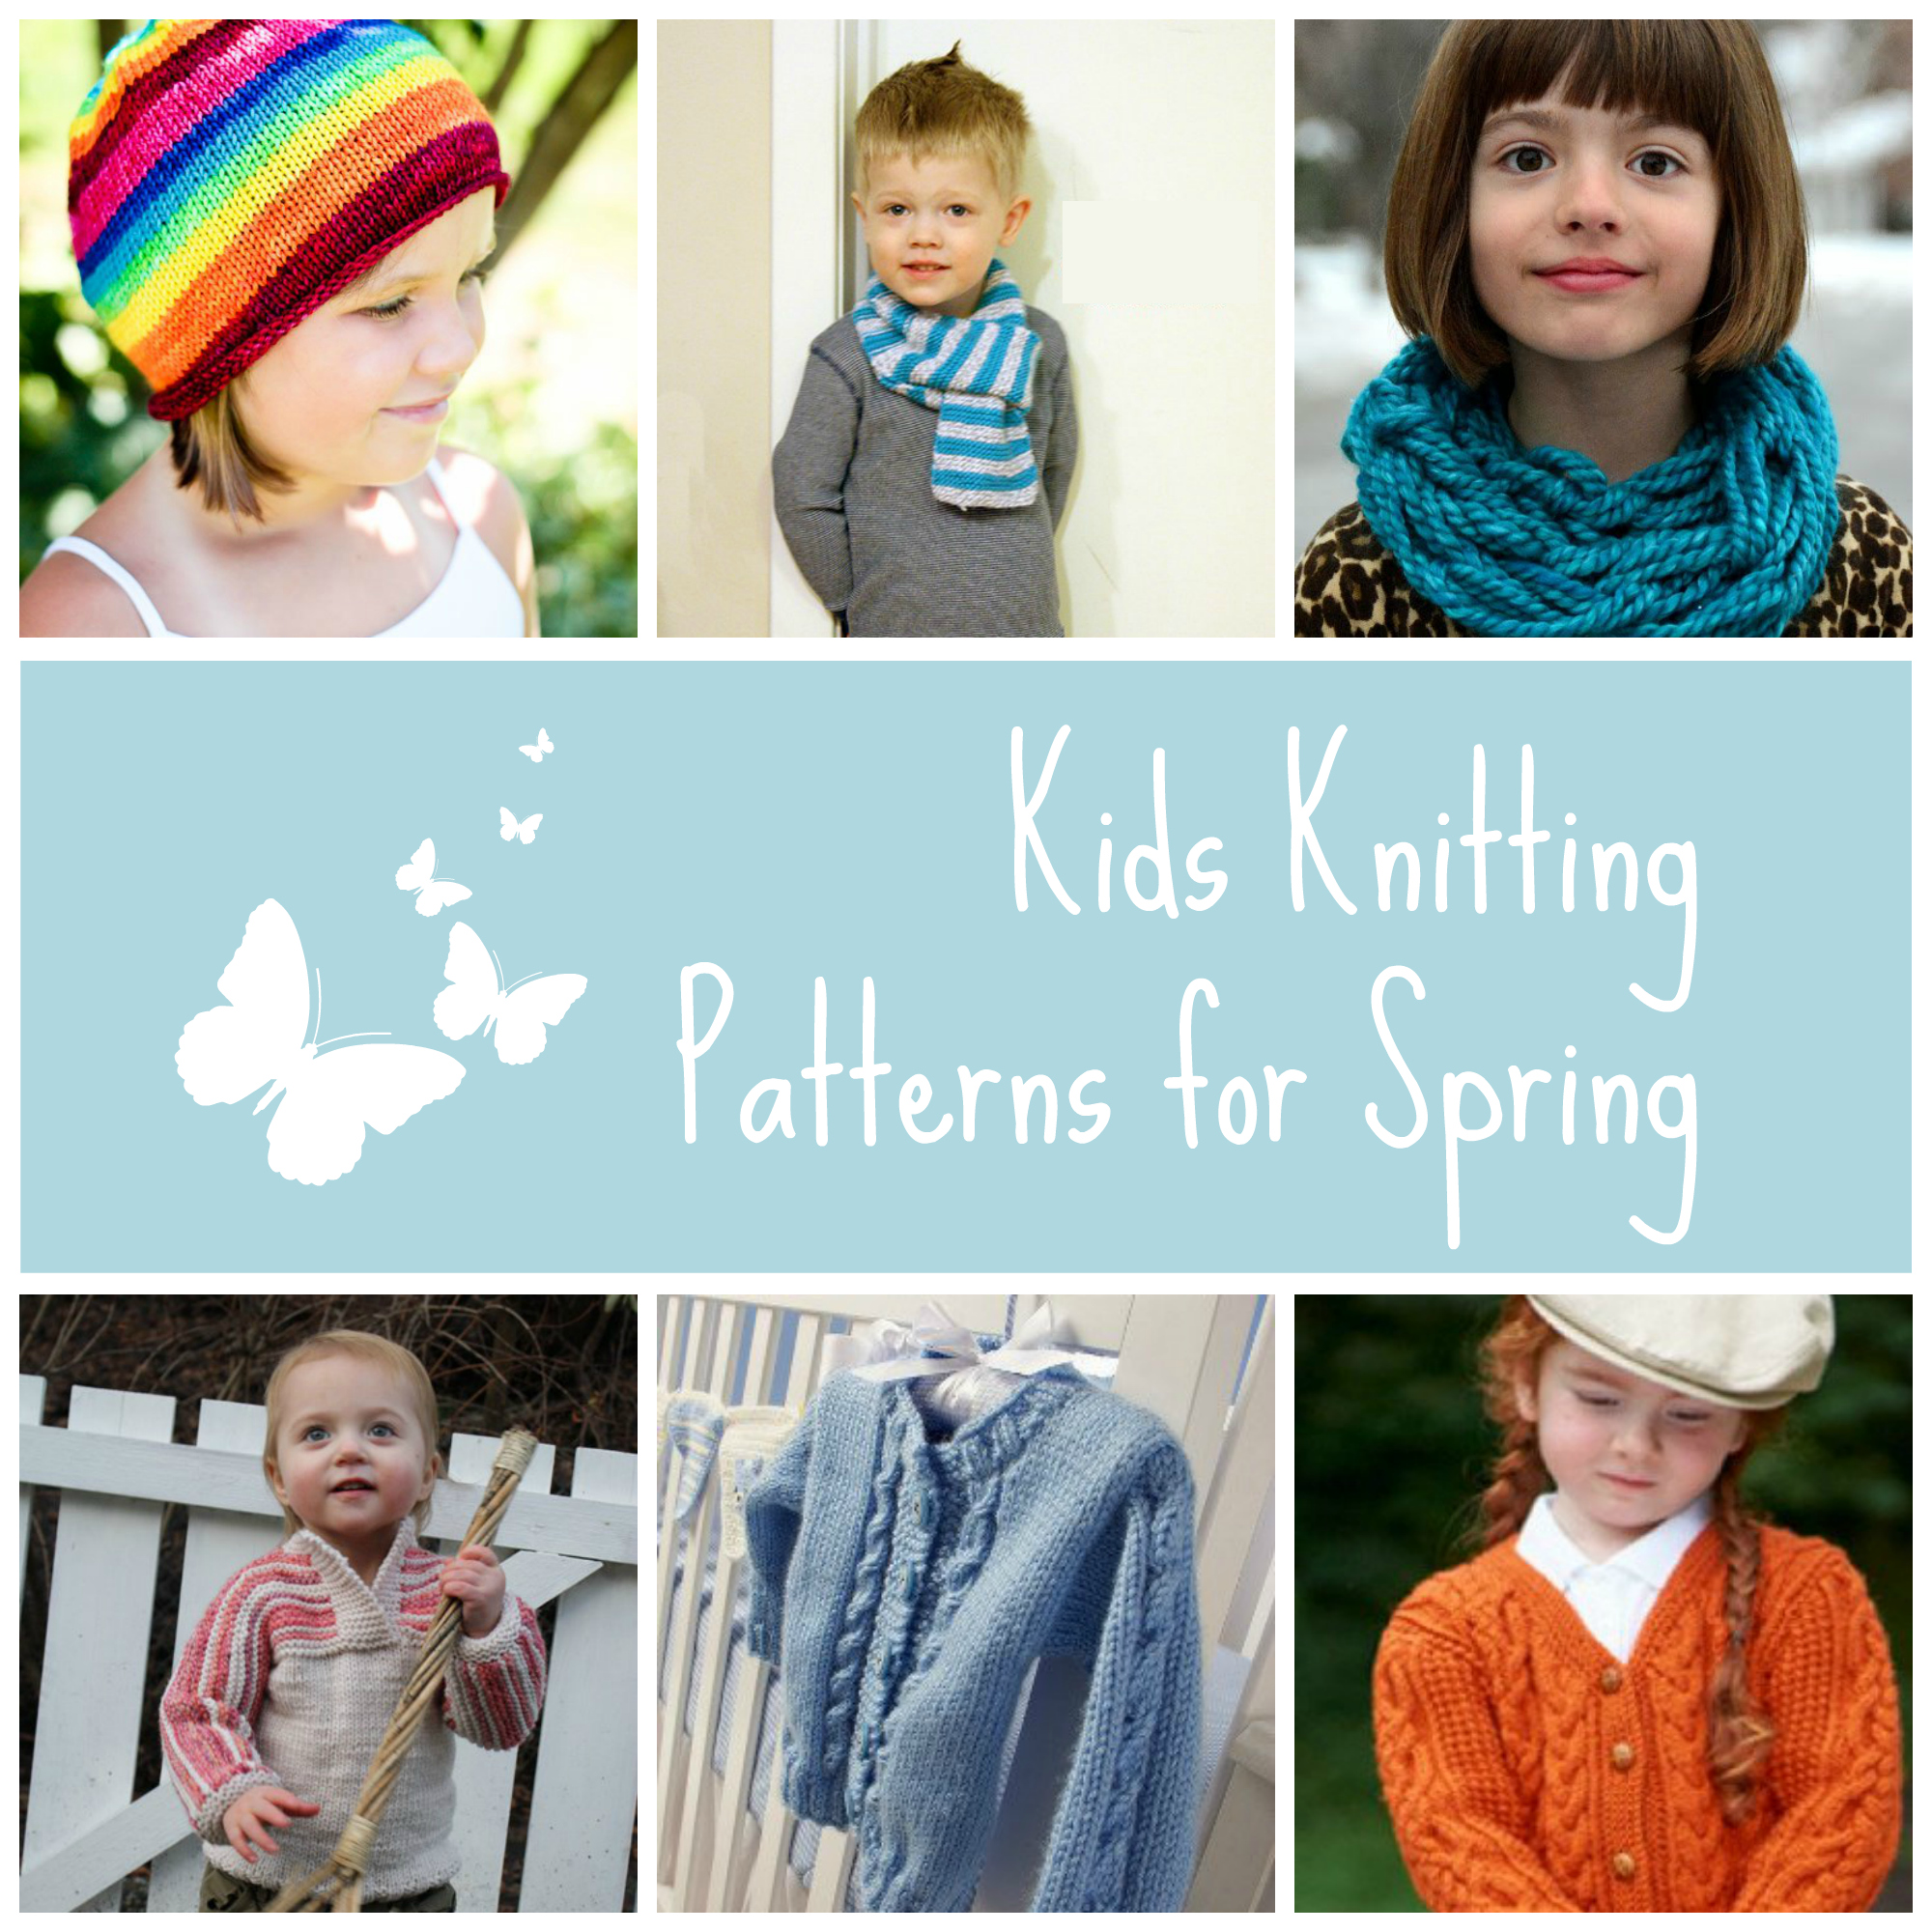 Kids Knitting Patterns for Spring